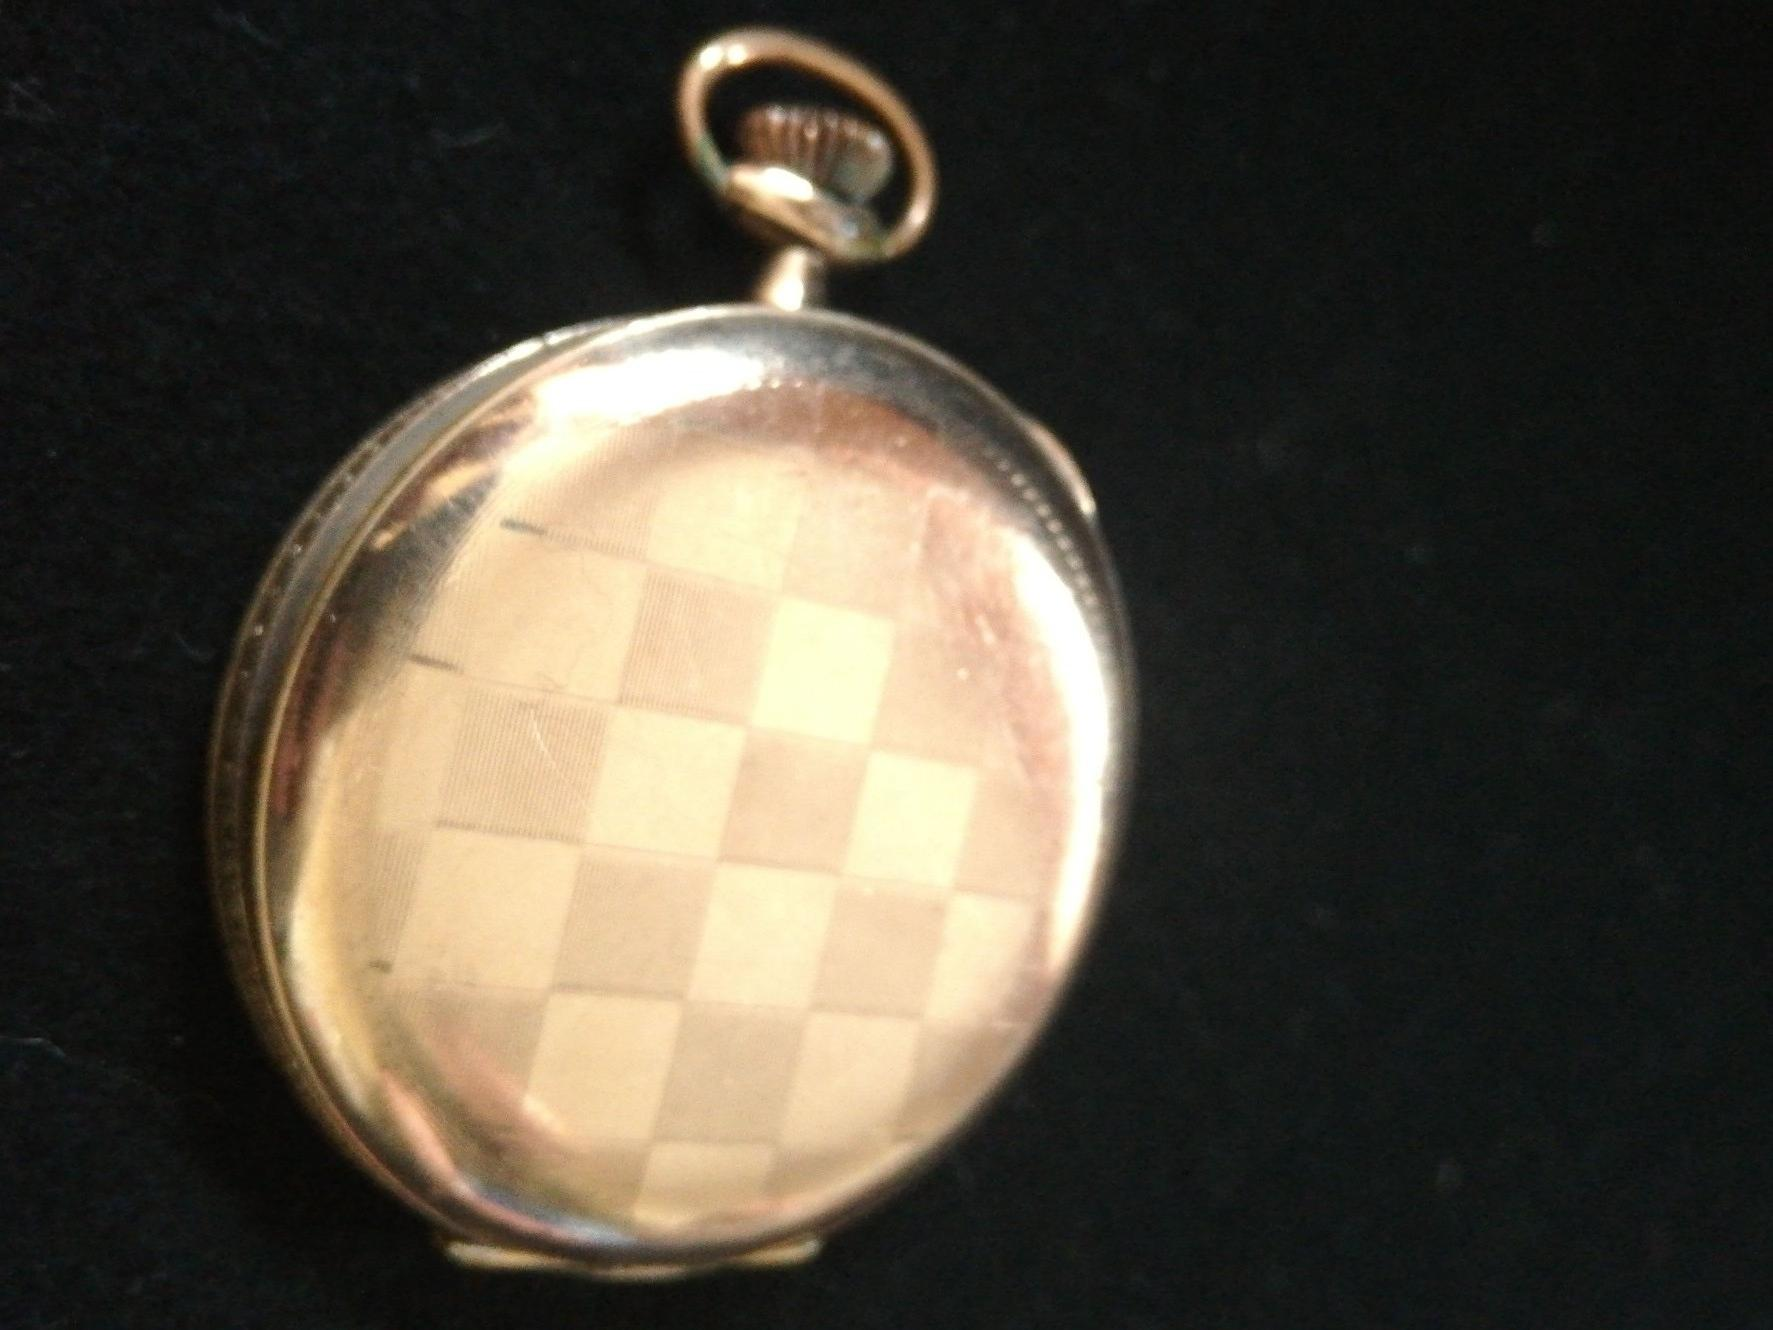 Gold plated German pocket watch by Wempe -a/f running order but lacking minute hand & glass - Image 3 of 3